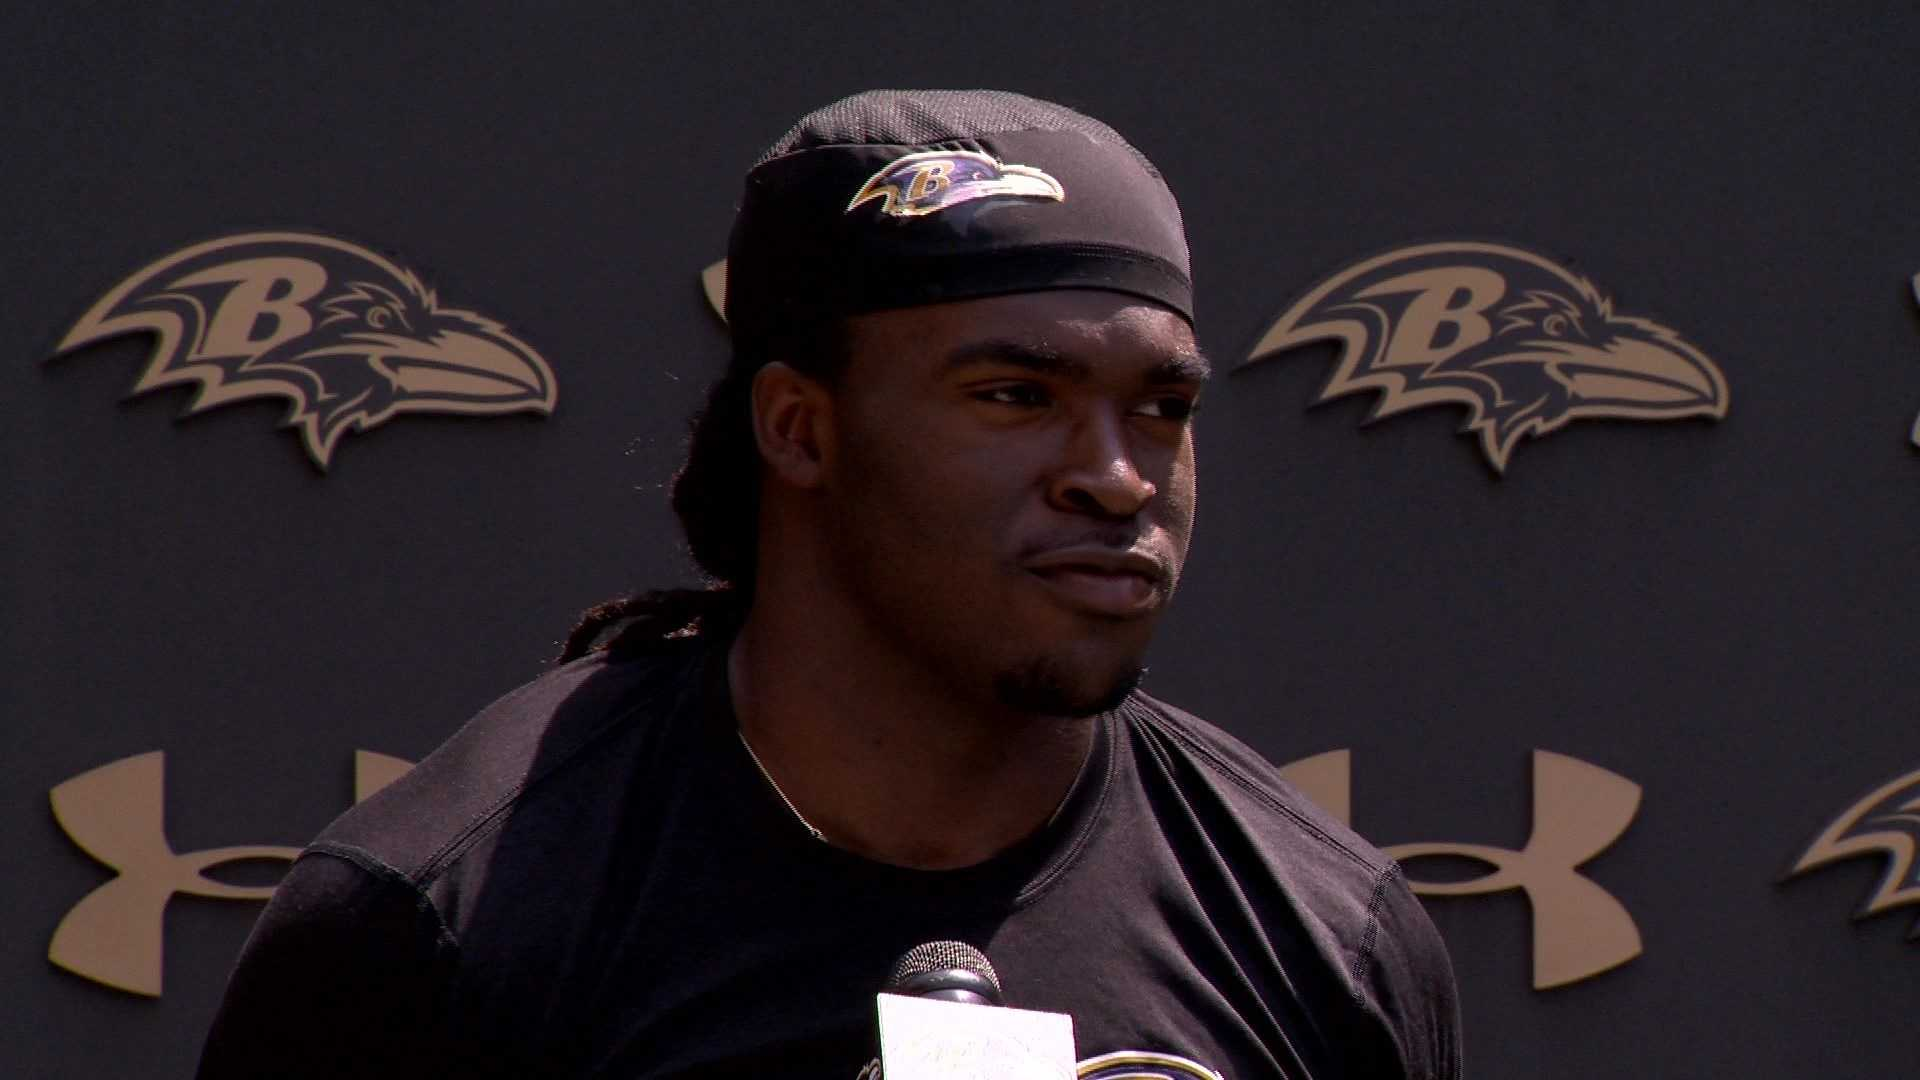 Ravens WR Breshad Perriman was the team's first round pick in the 2015 NFL Draft.